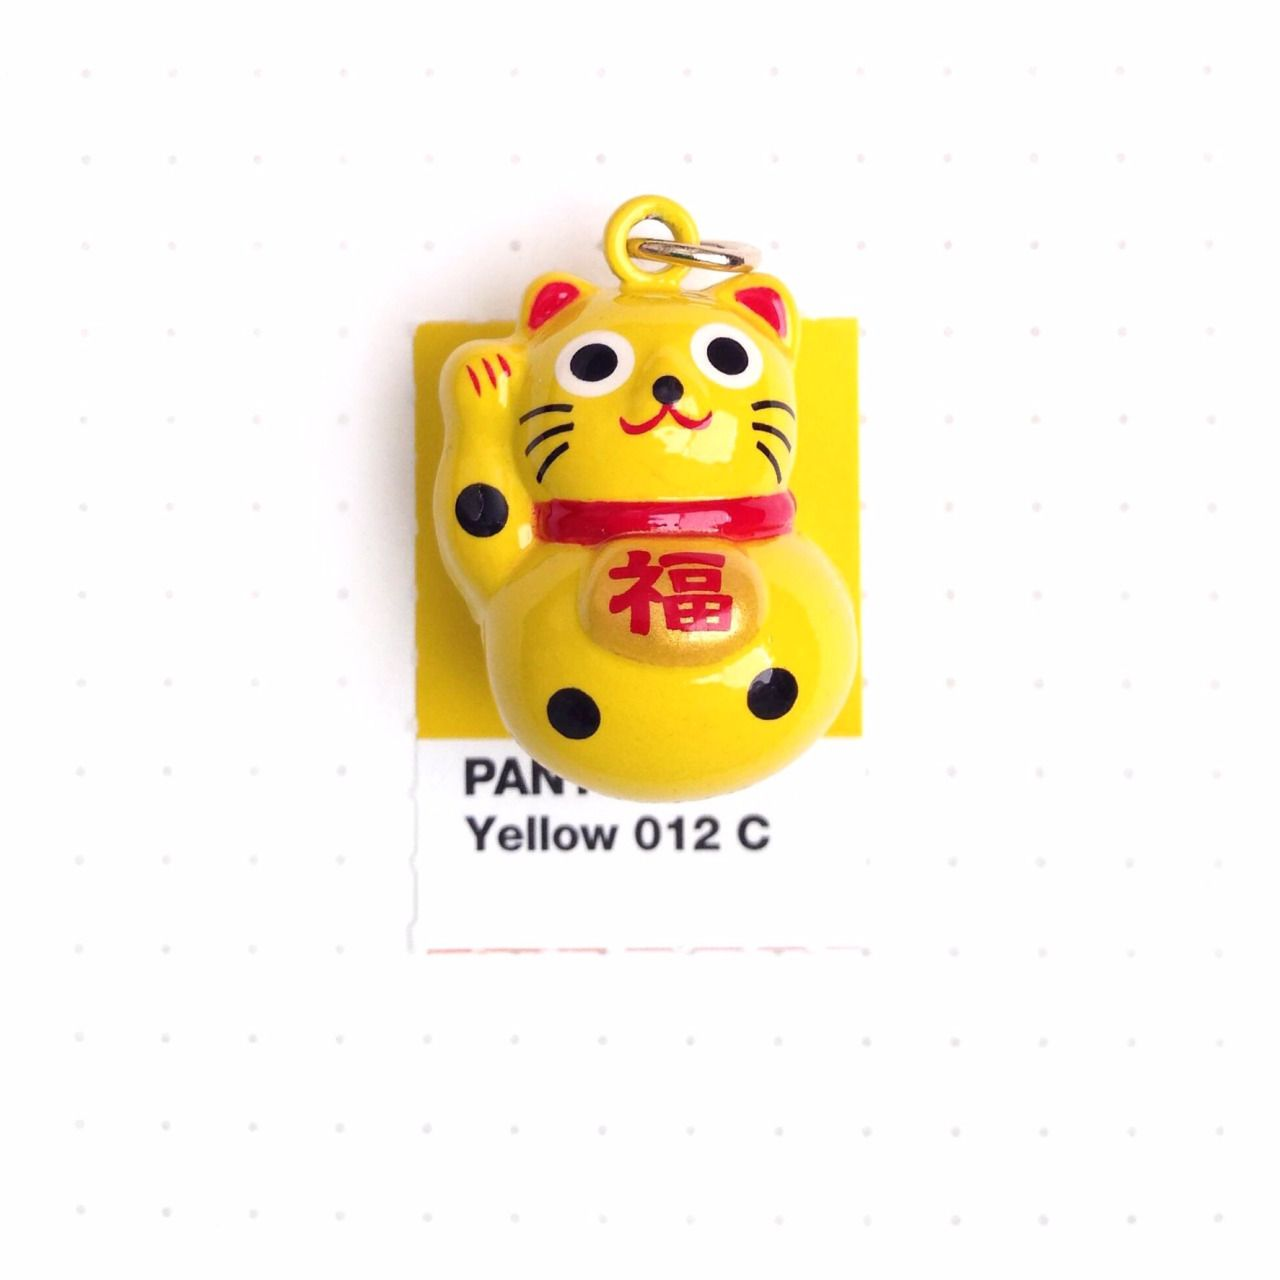 Pantone Yellow 012 Color Match Lucky Cat Bell Wishing Y All A Happy New Year And A Blessed 2016 Thank You Sneak Peek Photo From Ya Nada Es Igual Iguales